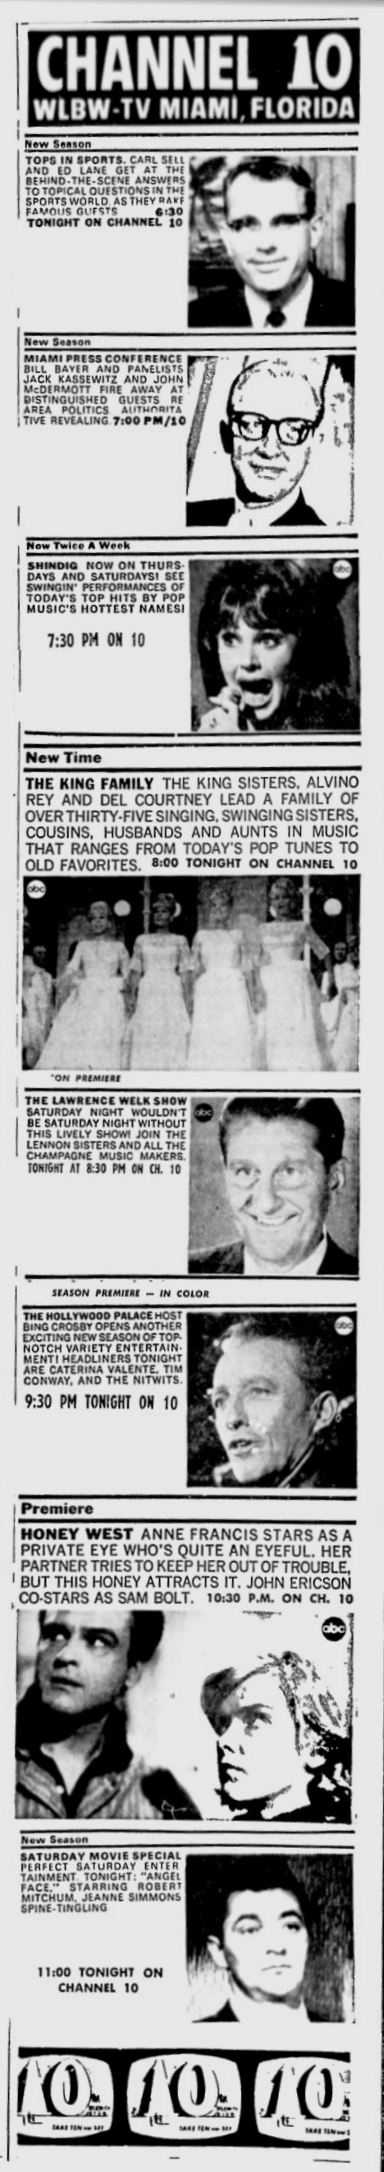 1965-09-18-wlbw-abc-shows